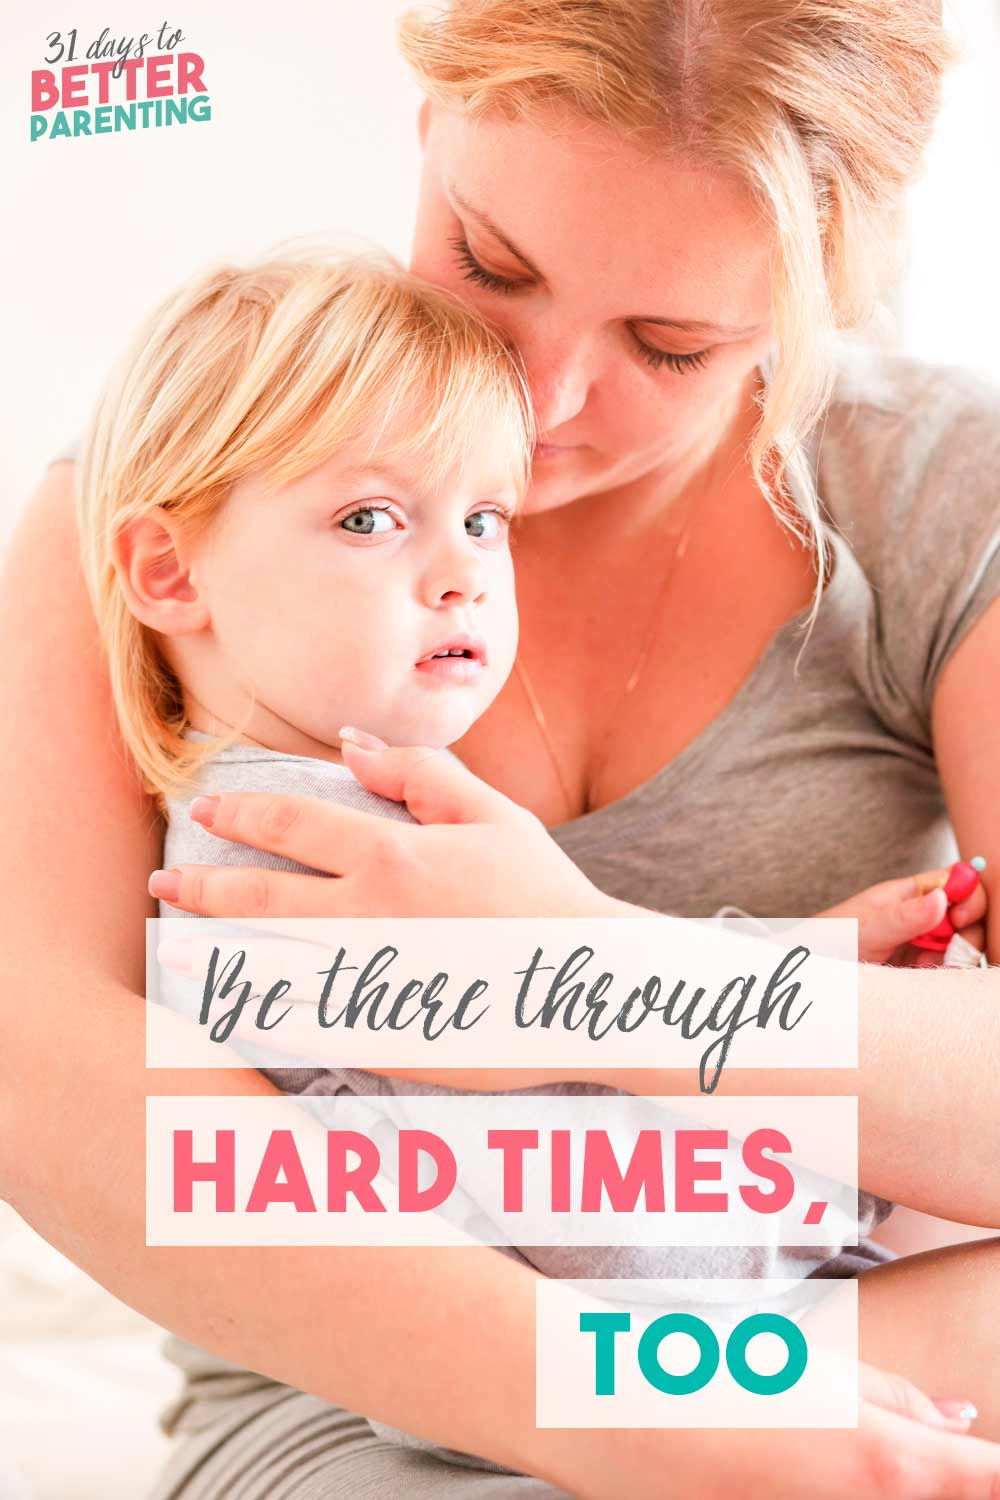 It's easy to spend time when our kids when all is happy. But our children need us there through the hard times, too. Here's why you should keep your child close especially when they're going through hard times.